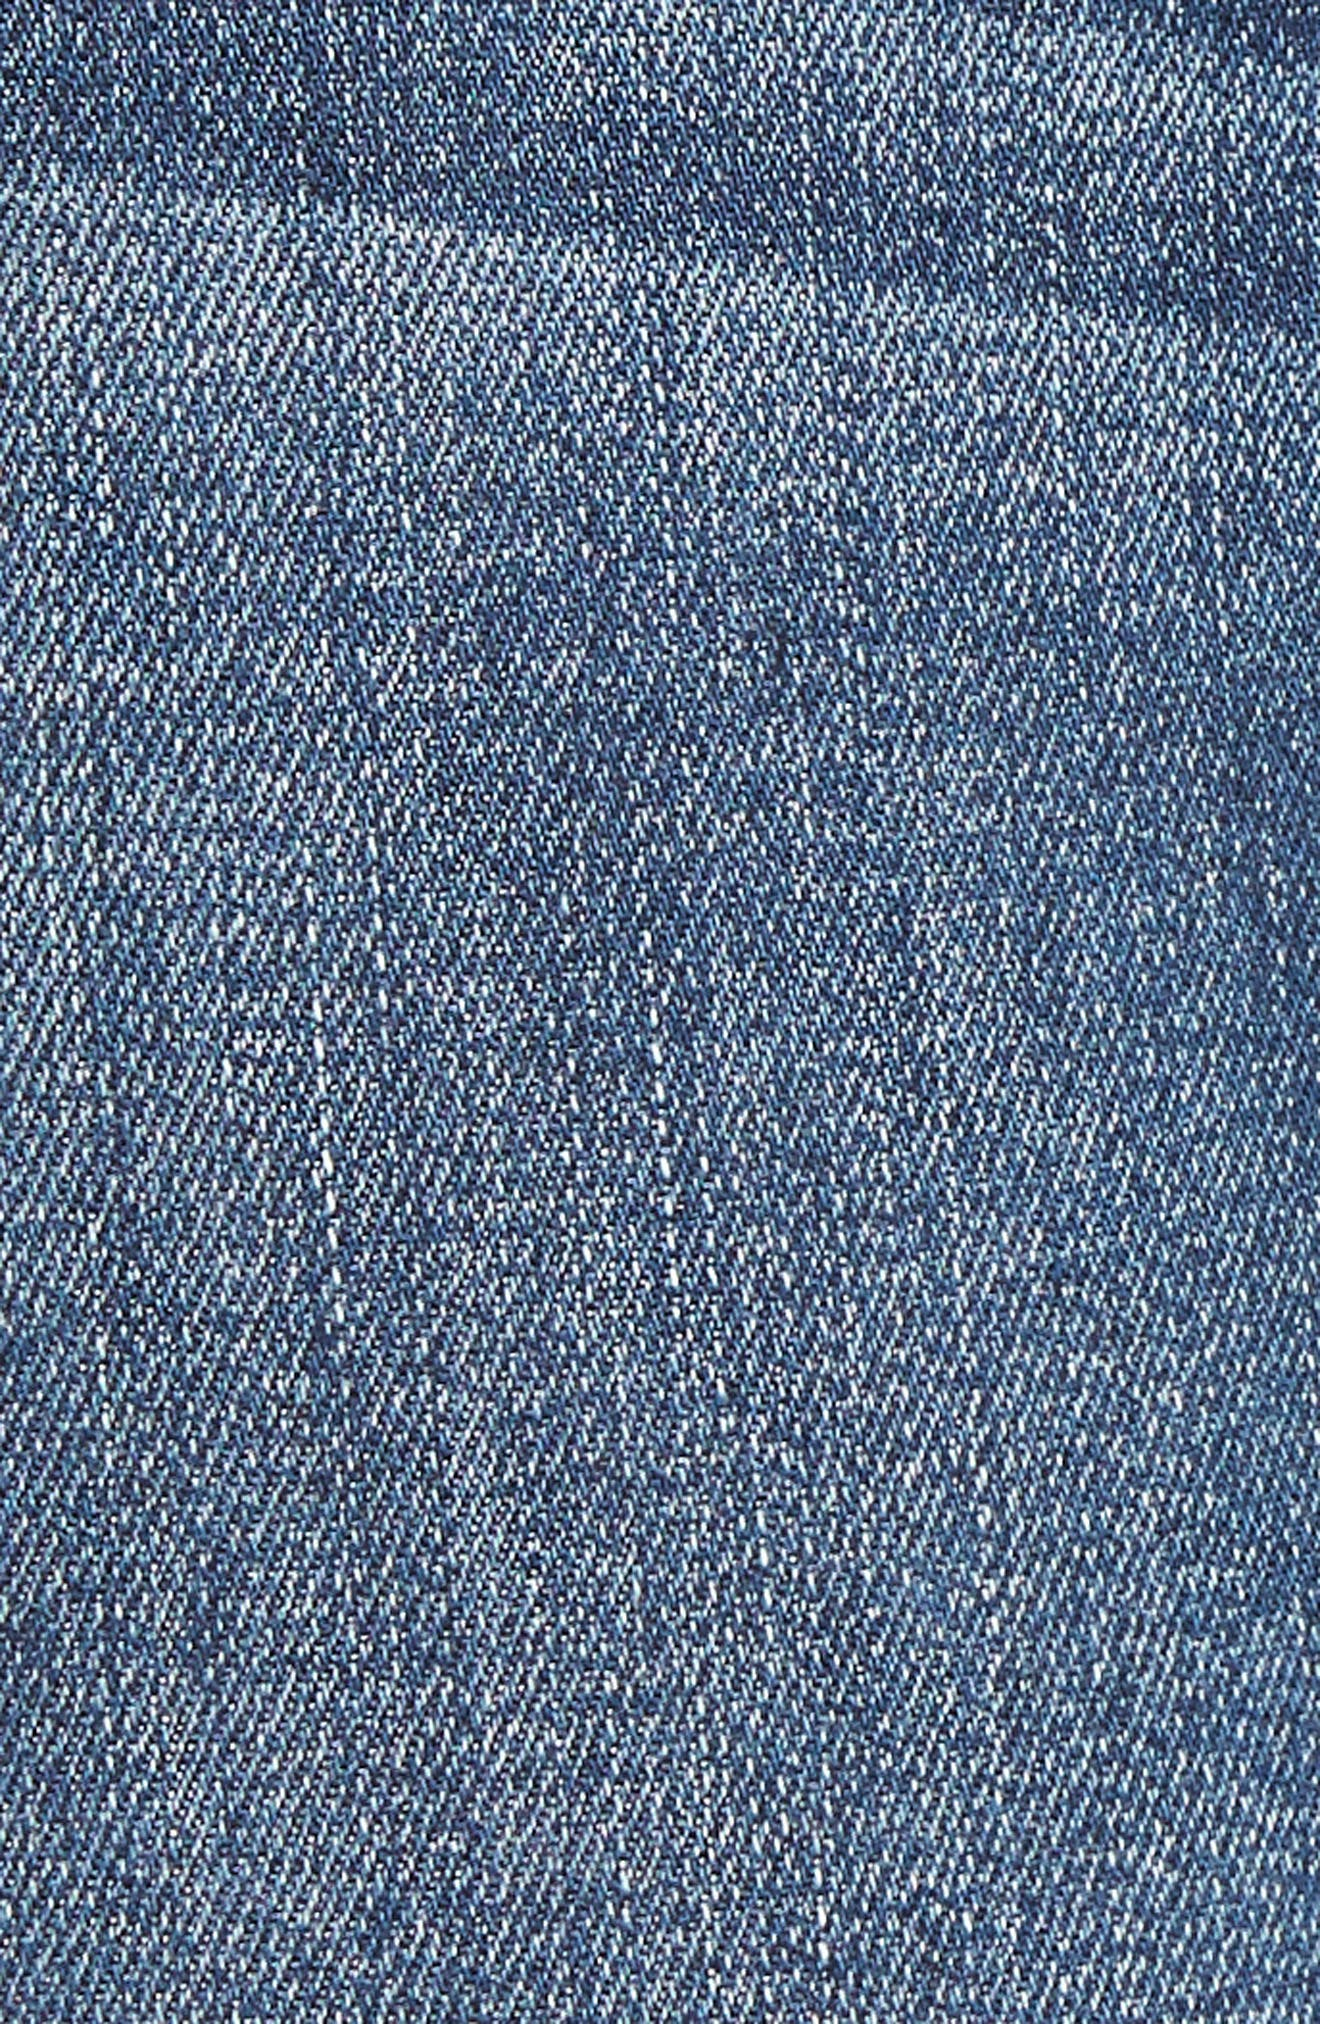 Ab-solution Ankle Skinny Jeans,                             Alternate thumbnail 6, color,                             420